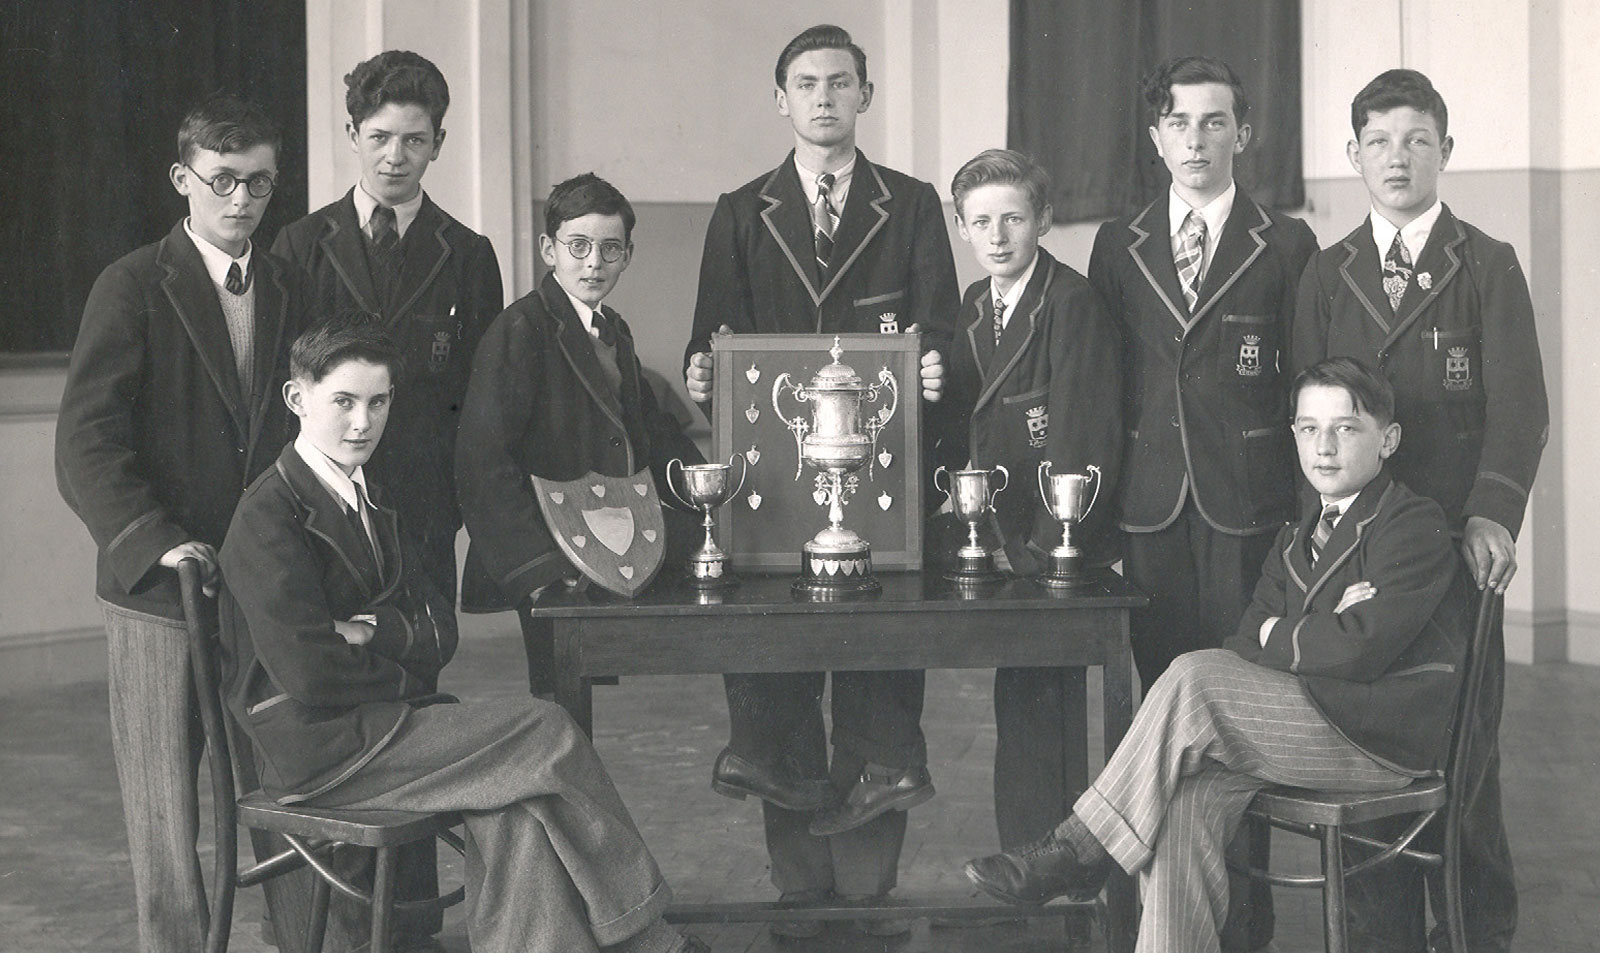 Terenure College in the 1930s